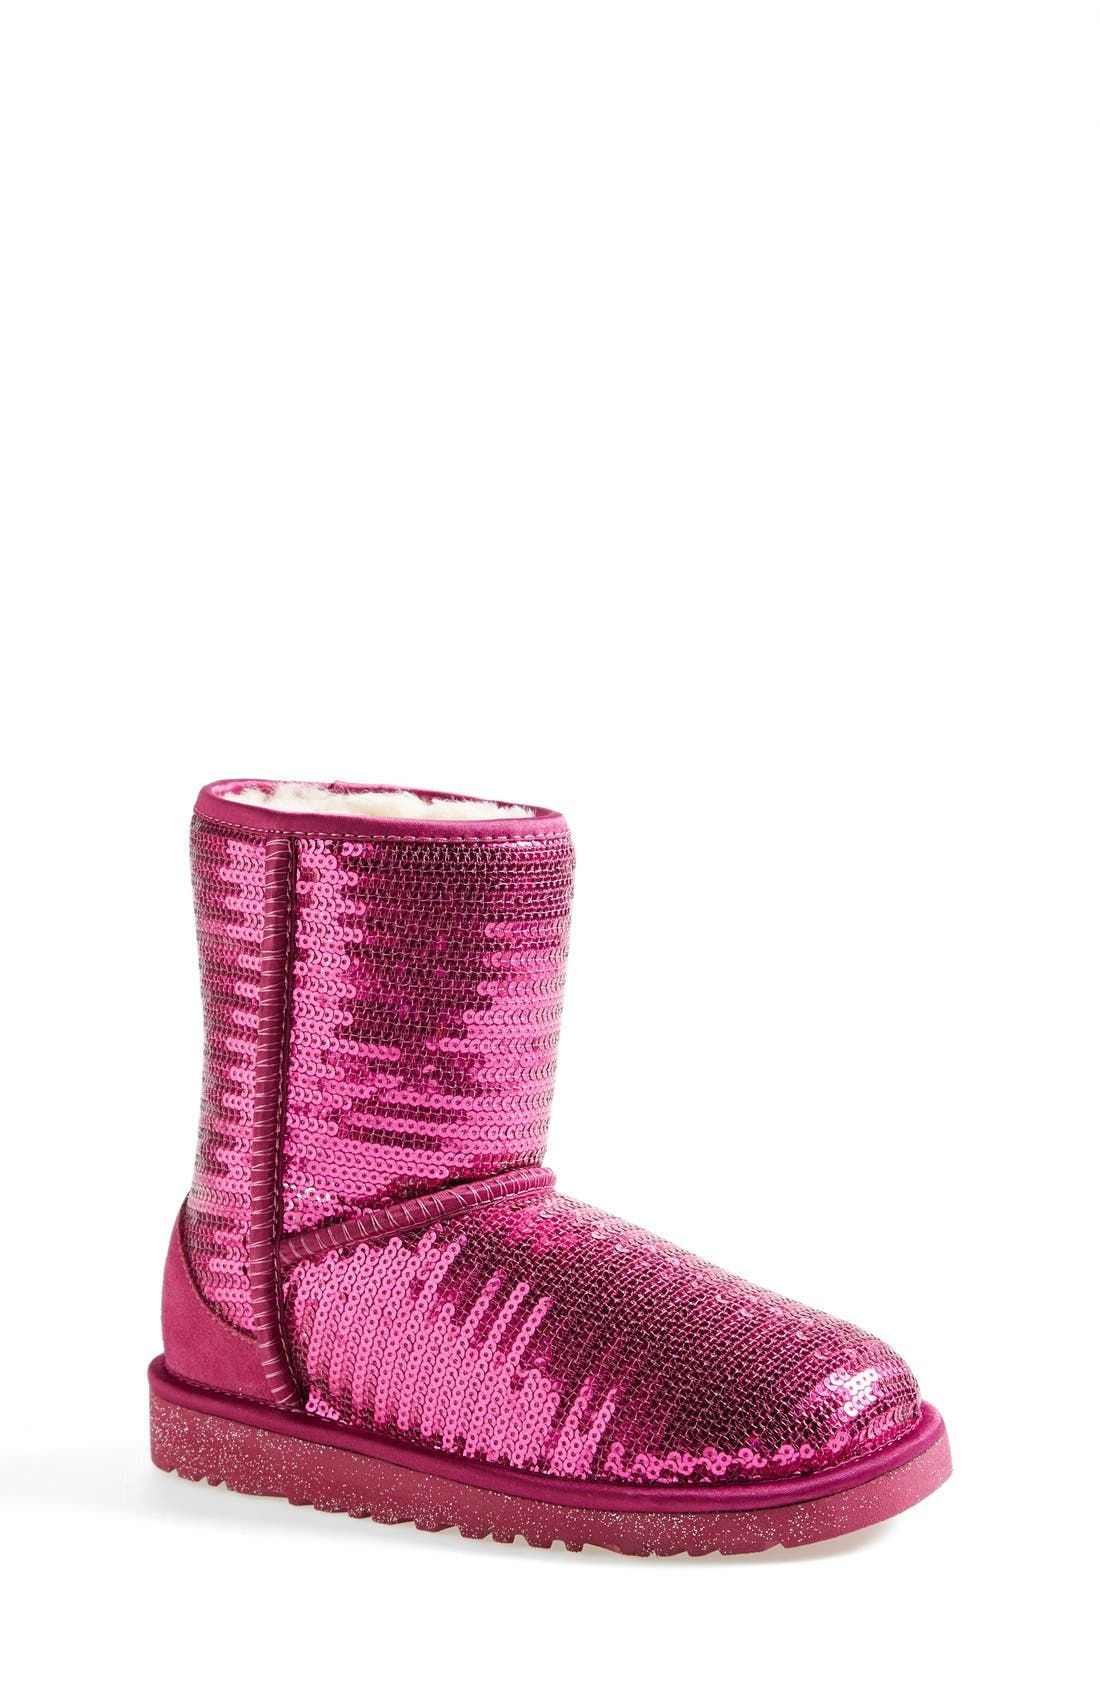 Alternate Image 1 Selected - UGG® 'Classic Short Sparkle' Boot (Little Kid & Big Kid)